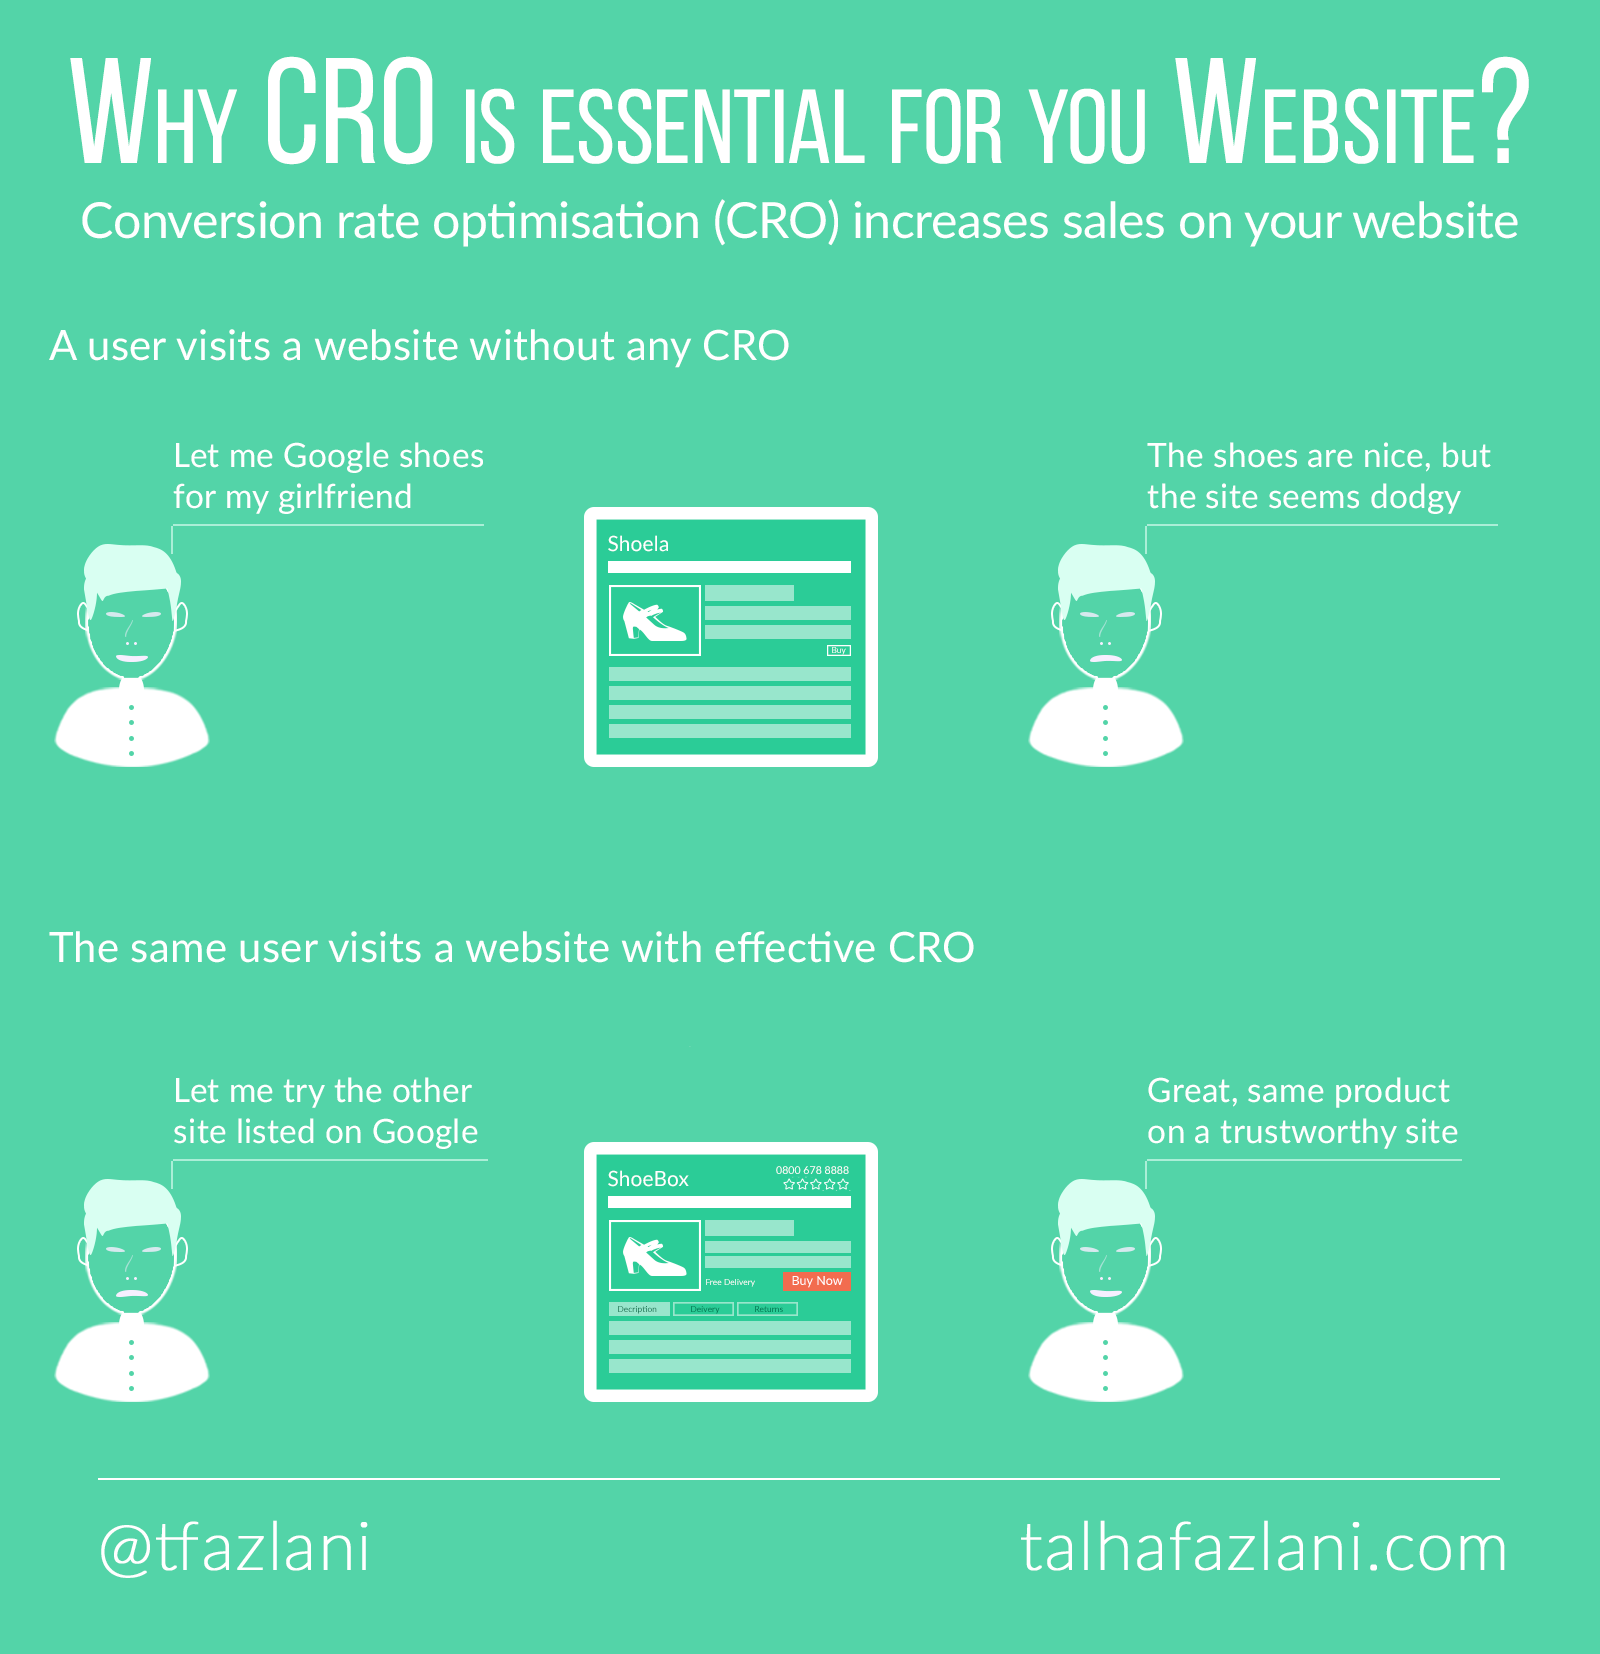 Why CRO is essential for websites?